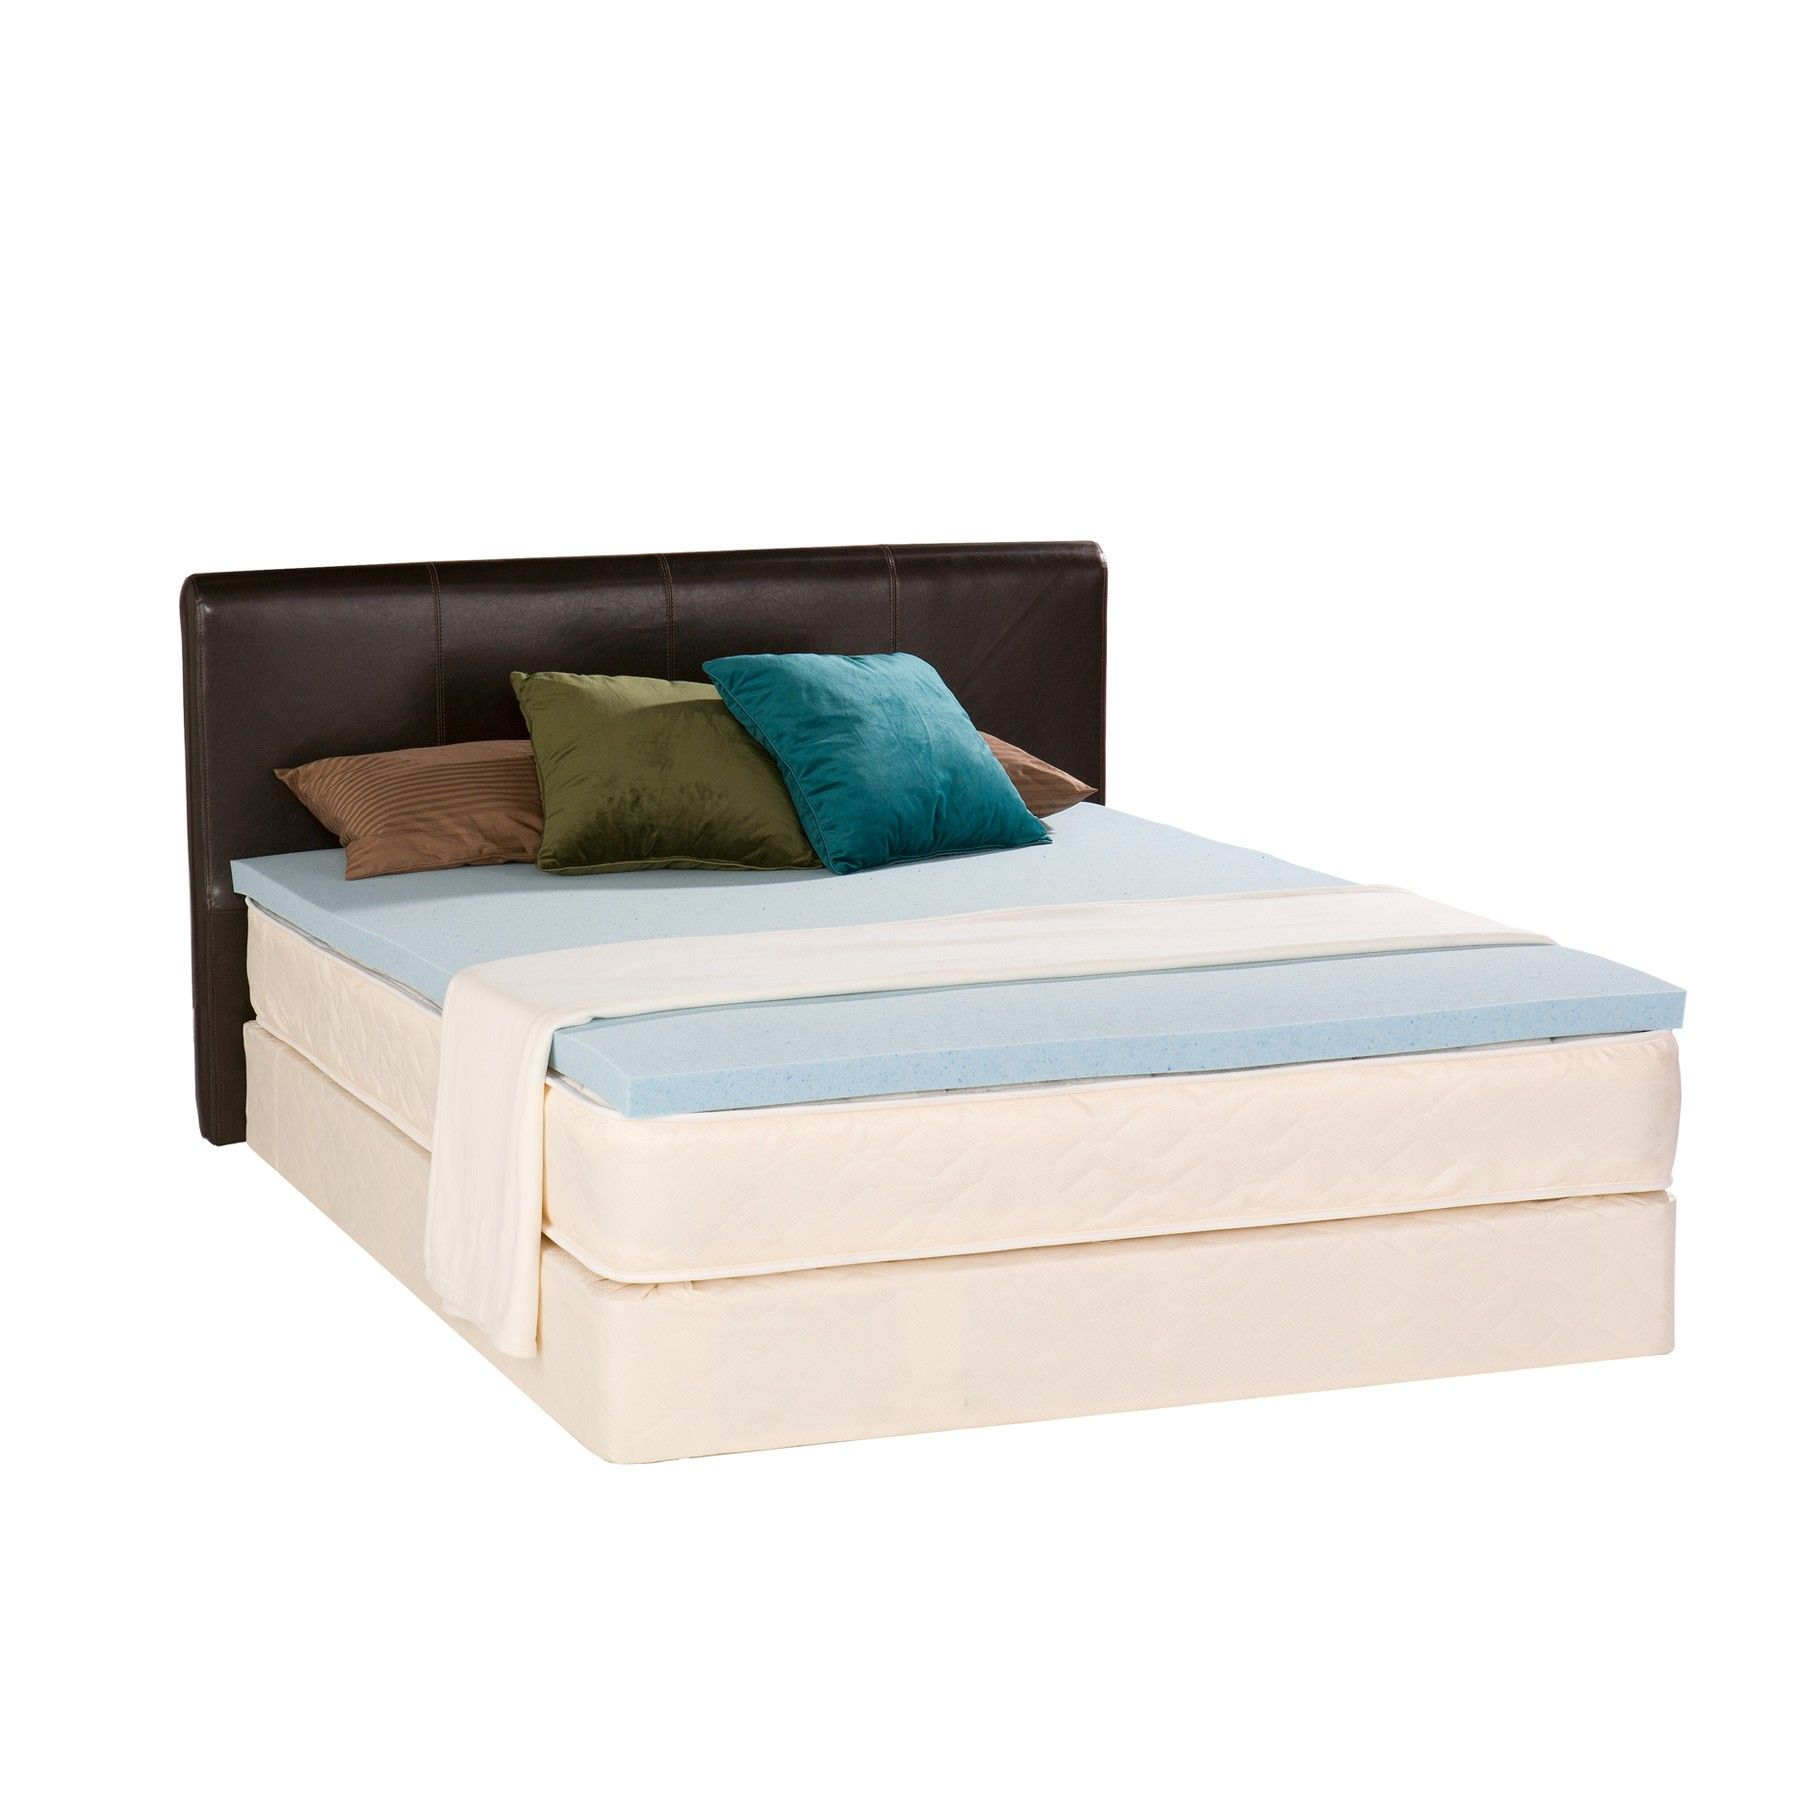 I was thinking about replacing my mattress when a friend suggested that I buy a mattress topper instead. So, I conducted some research. It appears that there are several different types: latex, feather and down, man-made fiber, wool, and memory foam. All have both advantages and disadvantages. What is needed is a mattress topper that is easy to maintain, hard wearing, and, above all, comfortable in use. If you have a partner you should, of course... FULL ARTICLE @ http://dakotadave.com/